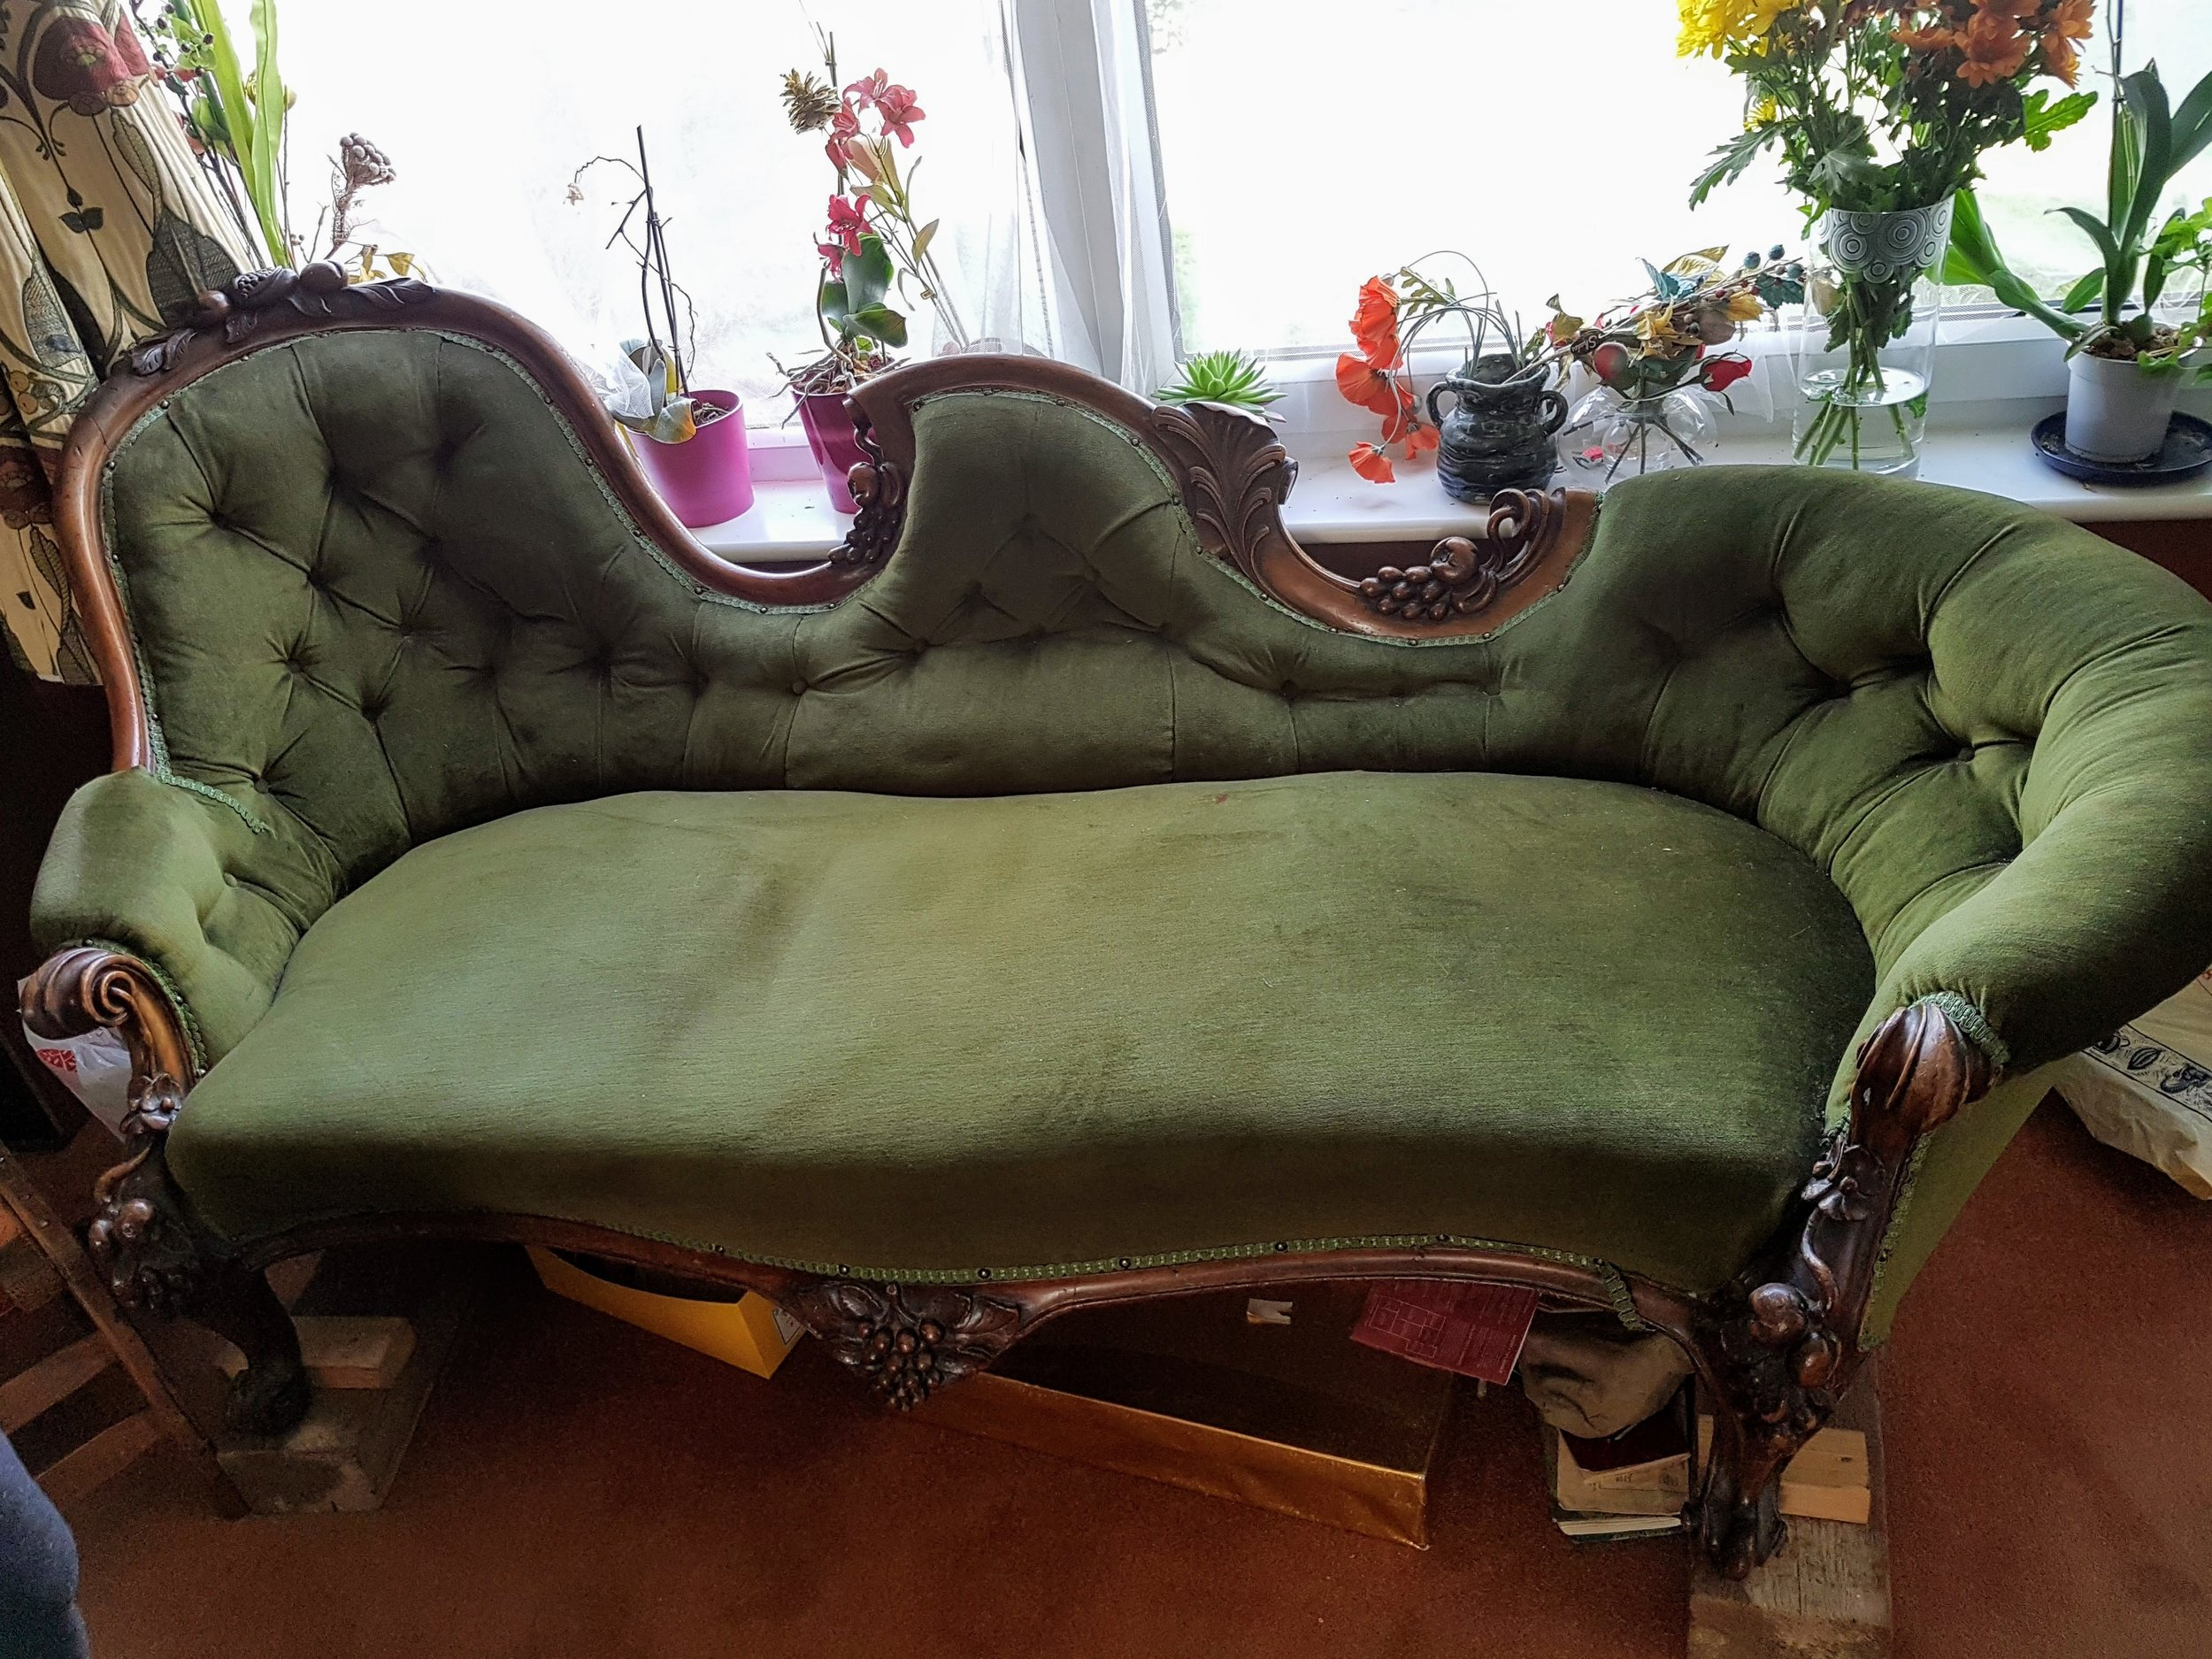 19th Century French Chaise - Before